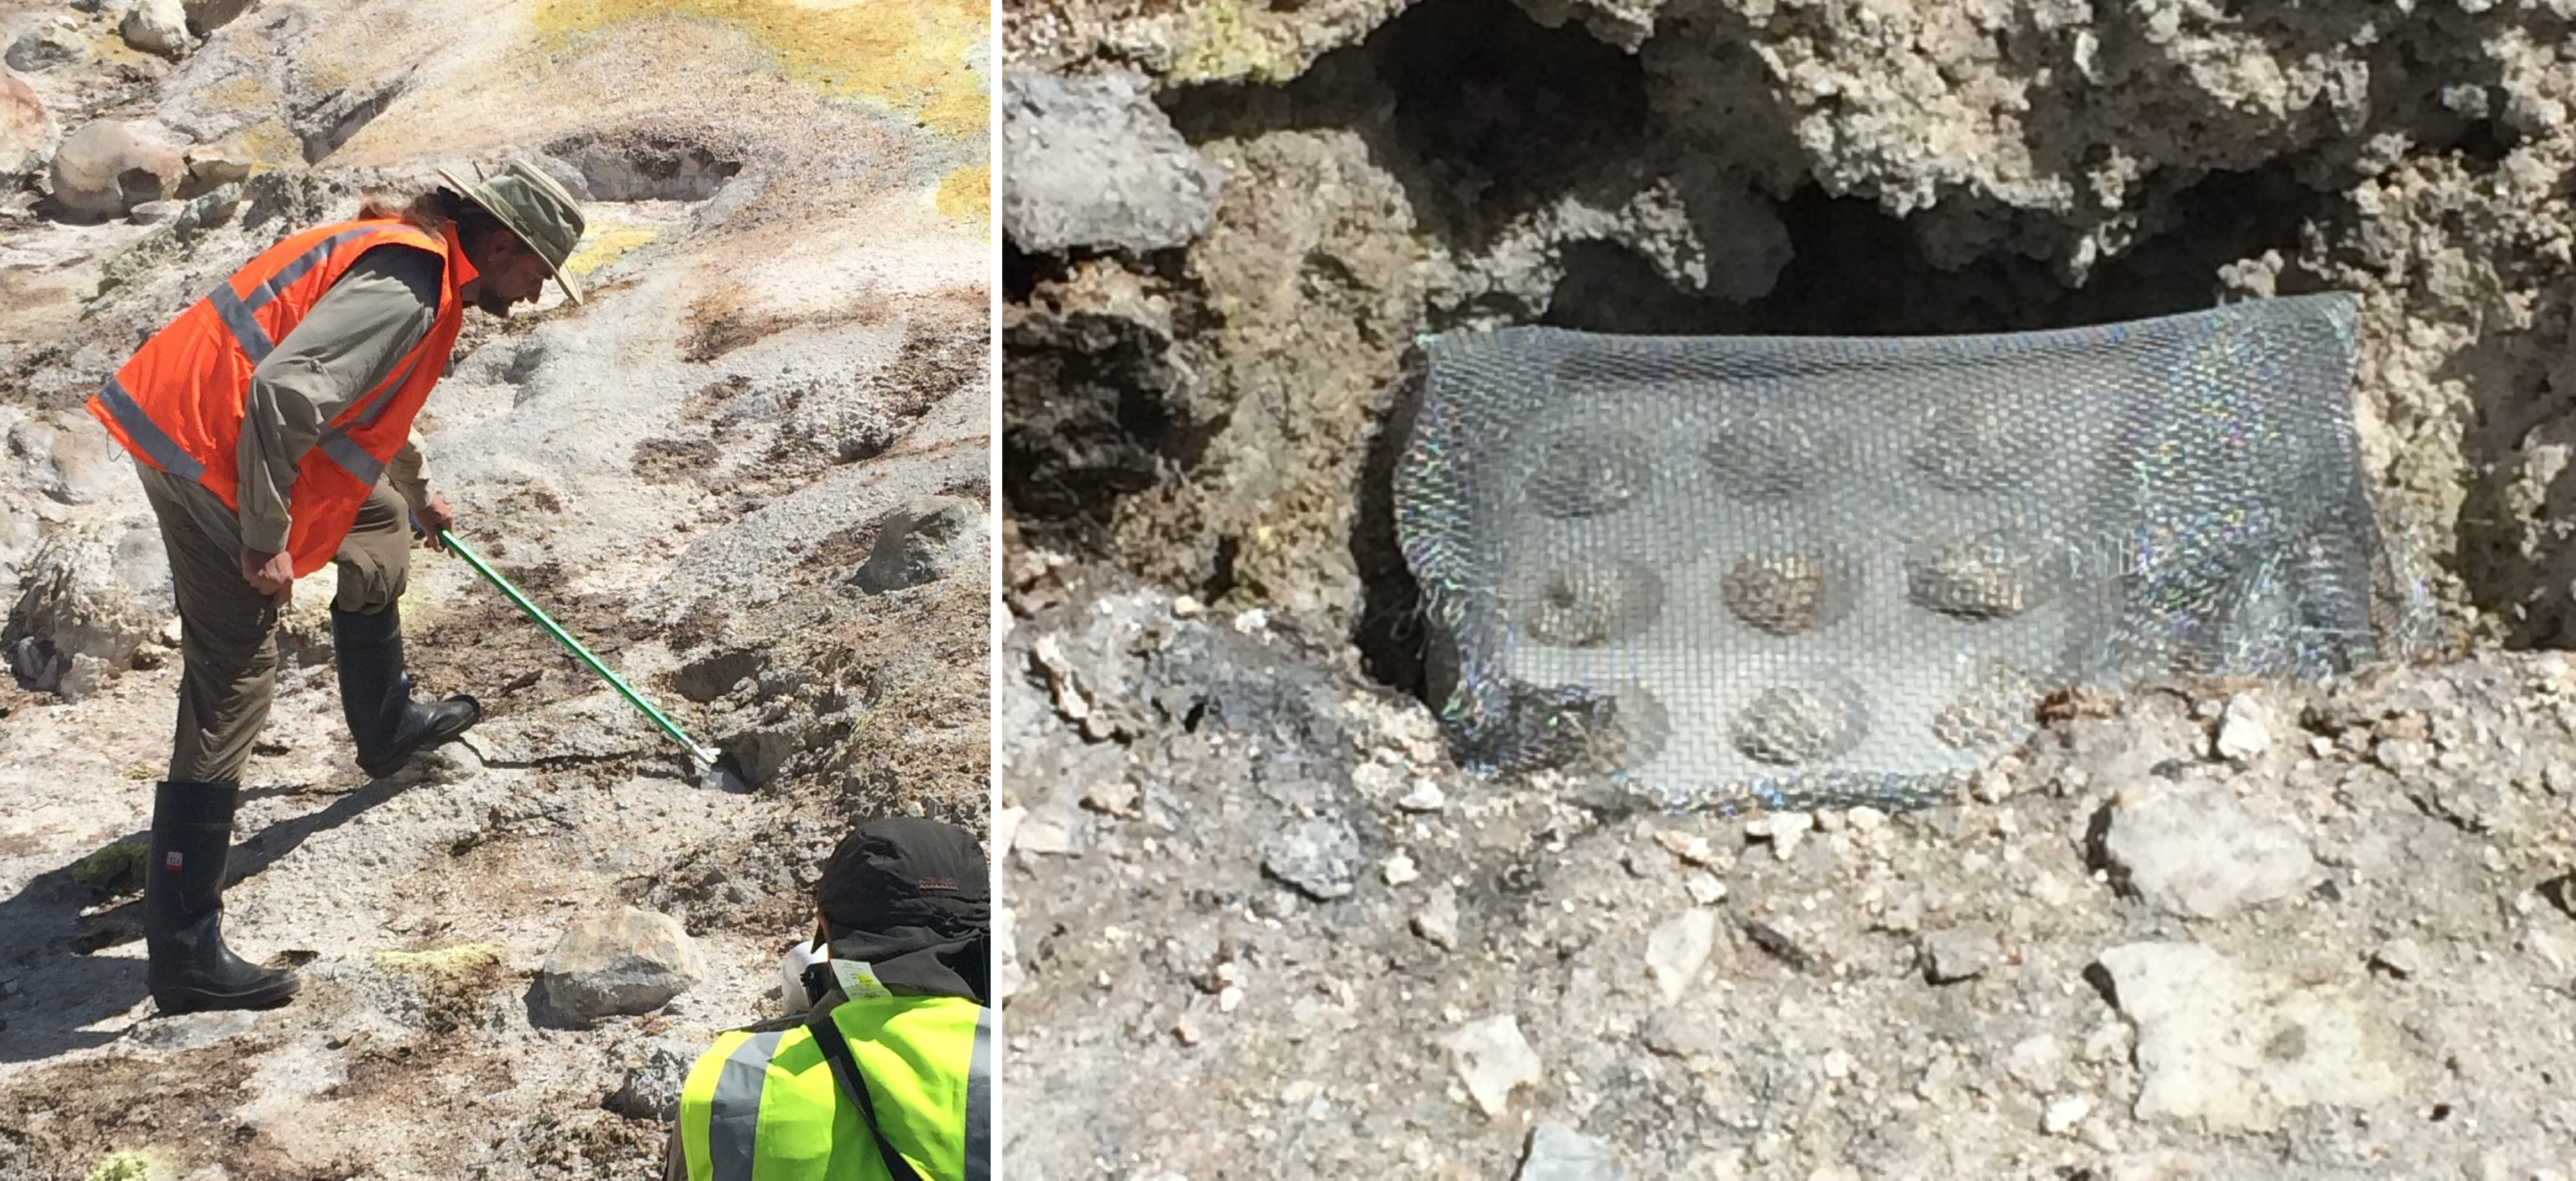 experimental samples in fumarole vents